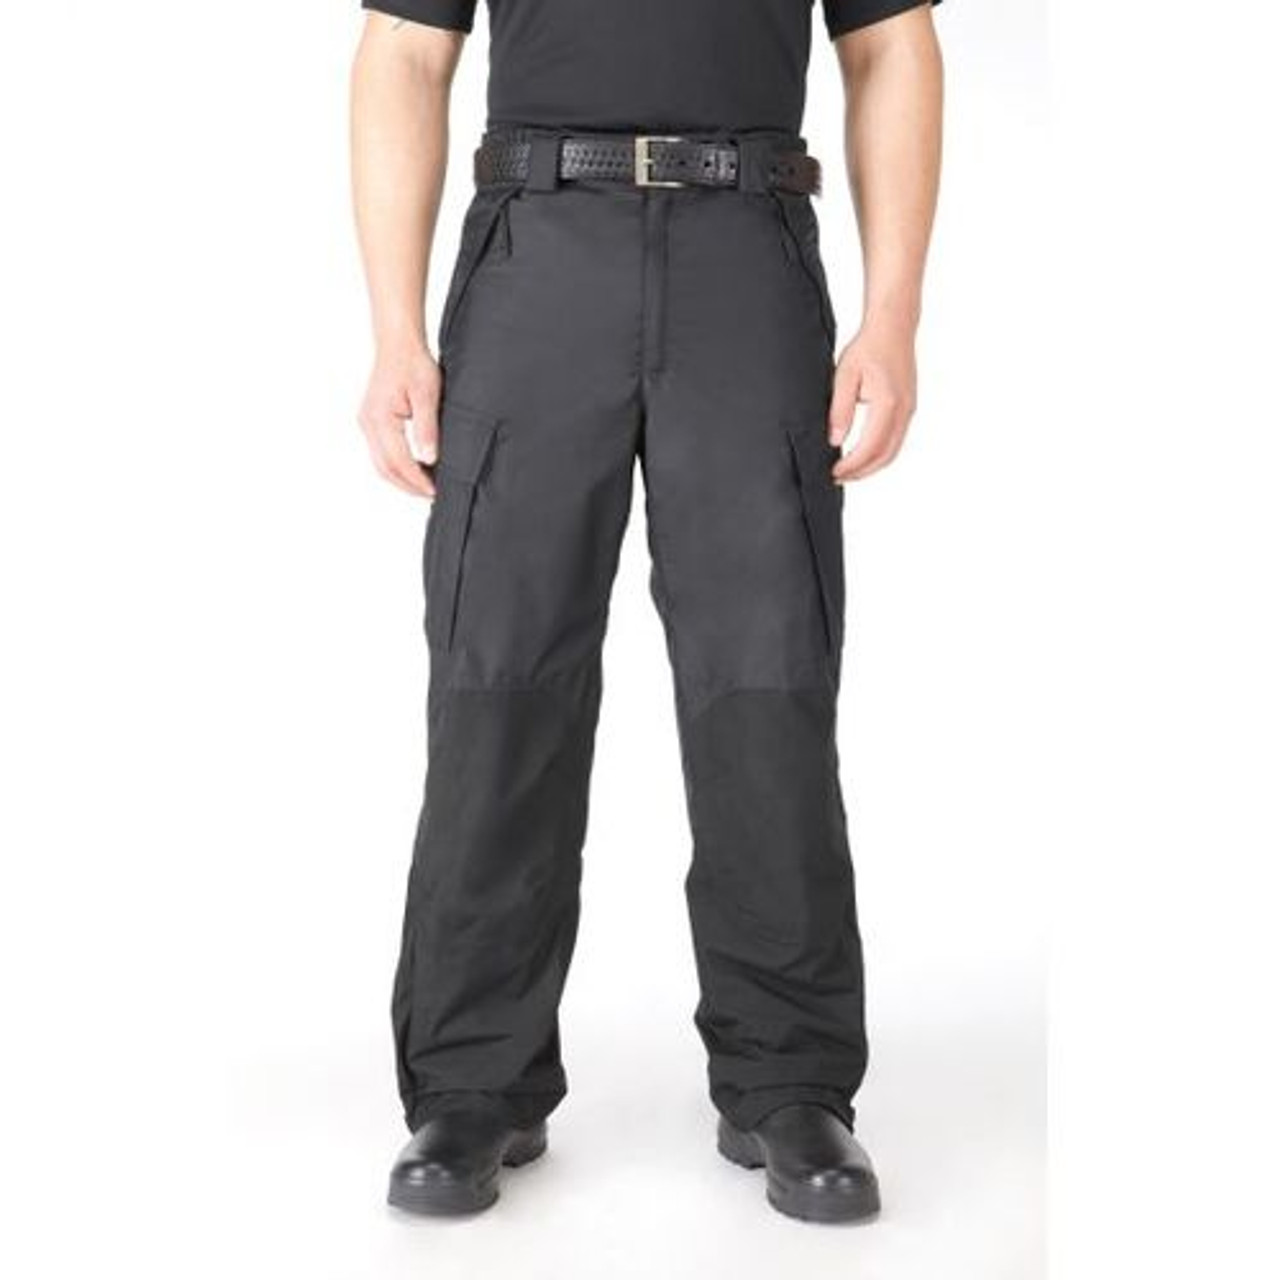 5.11 Tactical 48057 Men's Waterproof Packable Patrol Uniform Pants, Relaxed Fit, Cargo, Ideal for Working in Inclement Weather, available in Black